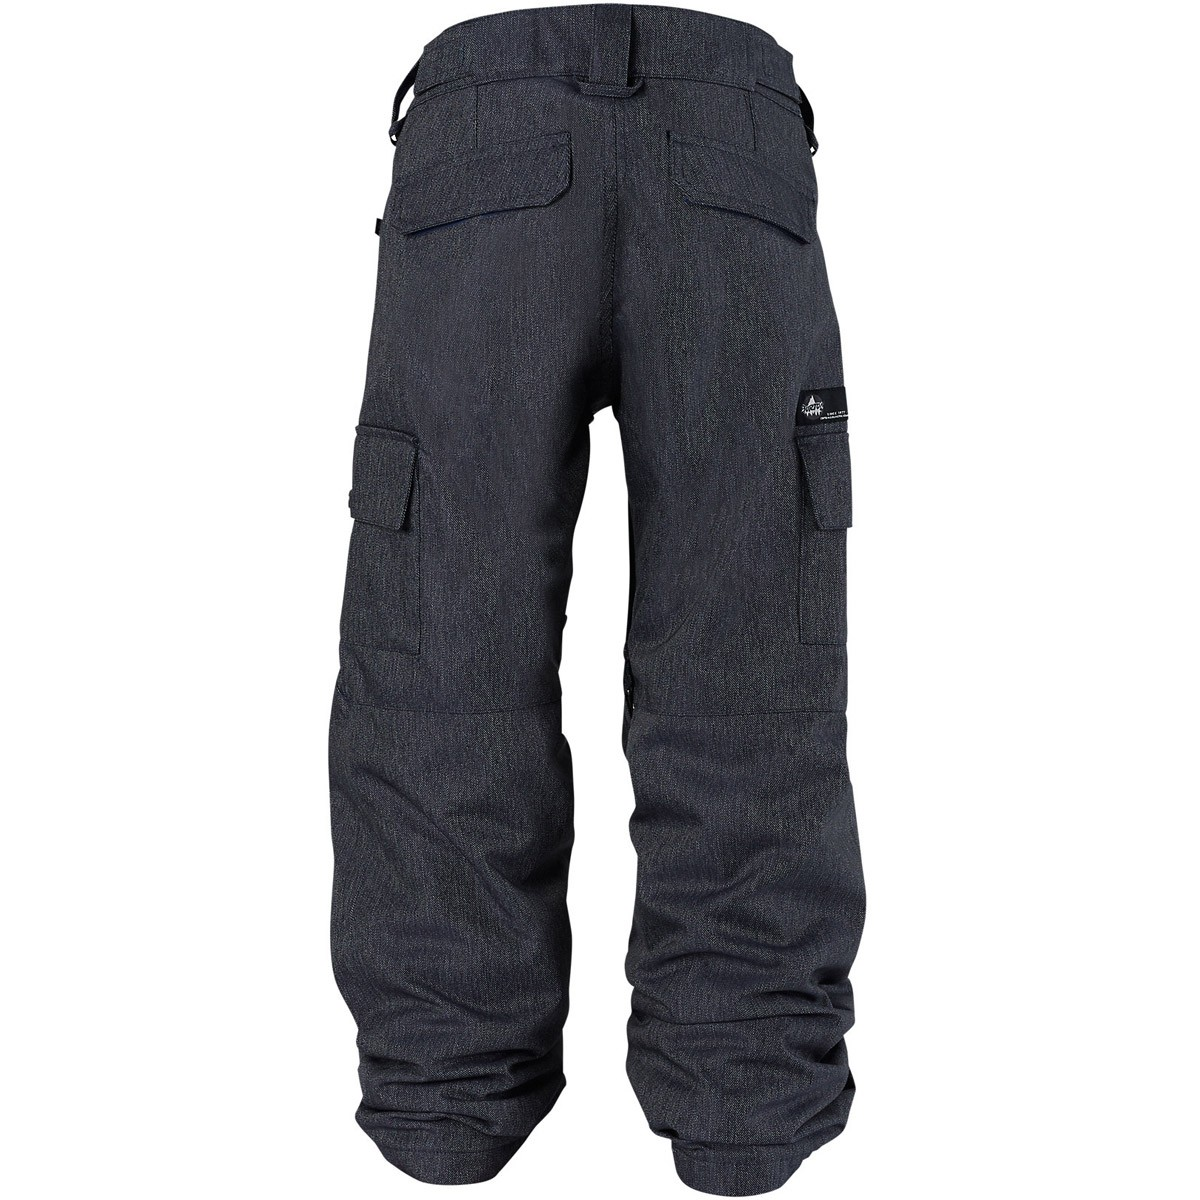 Find great deals on eBay for boys black cargo pants. Shop with confidence.